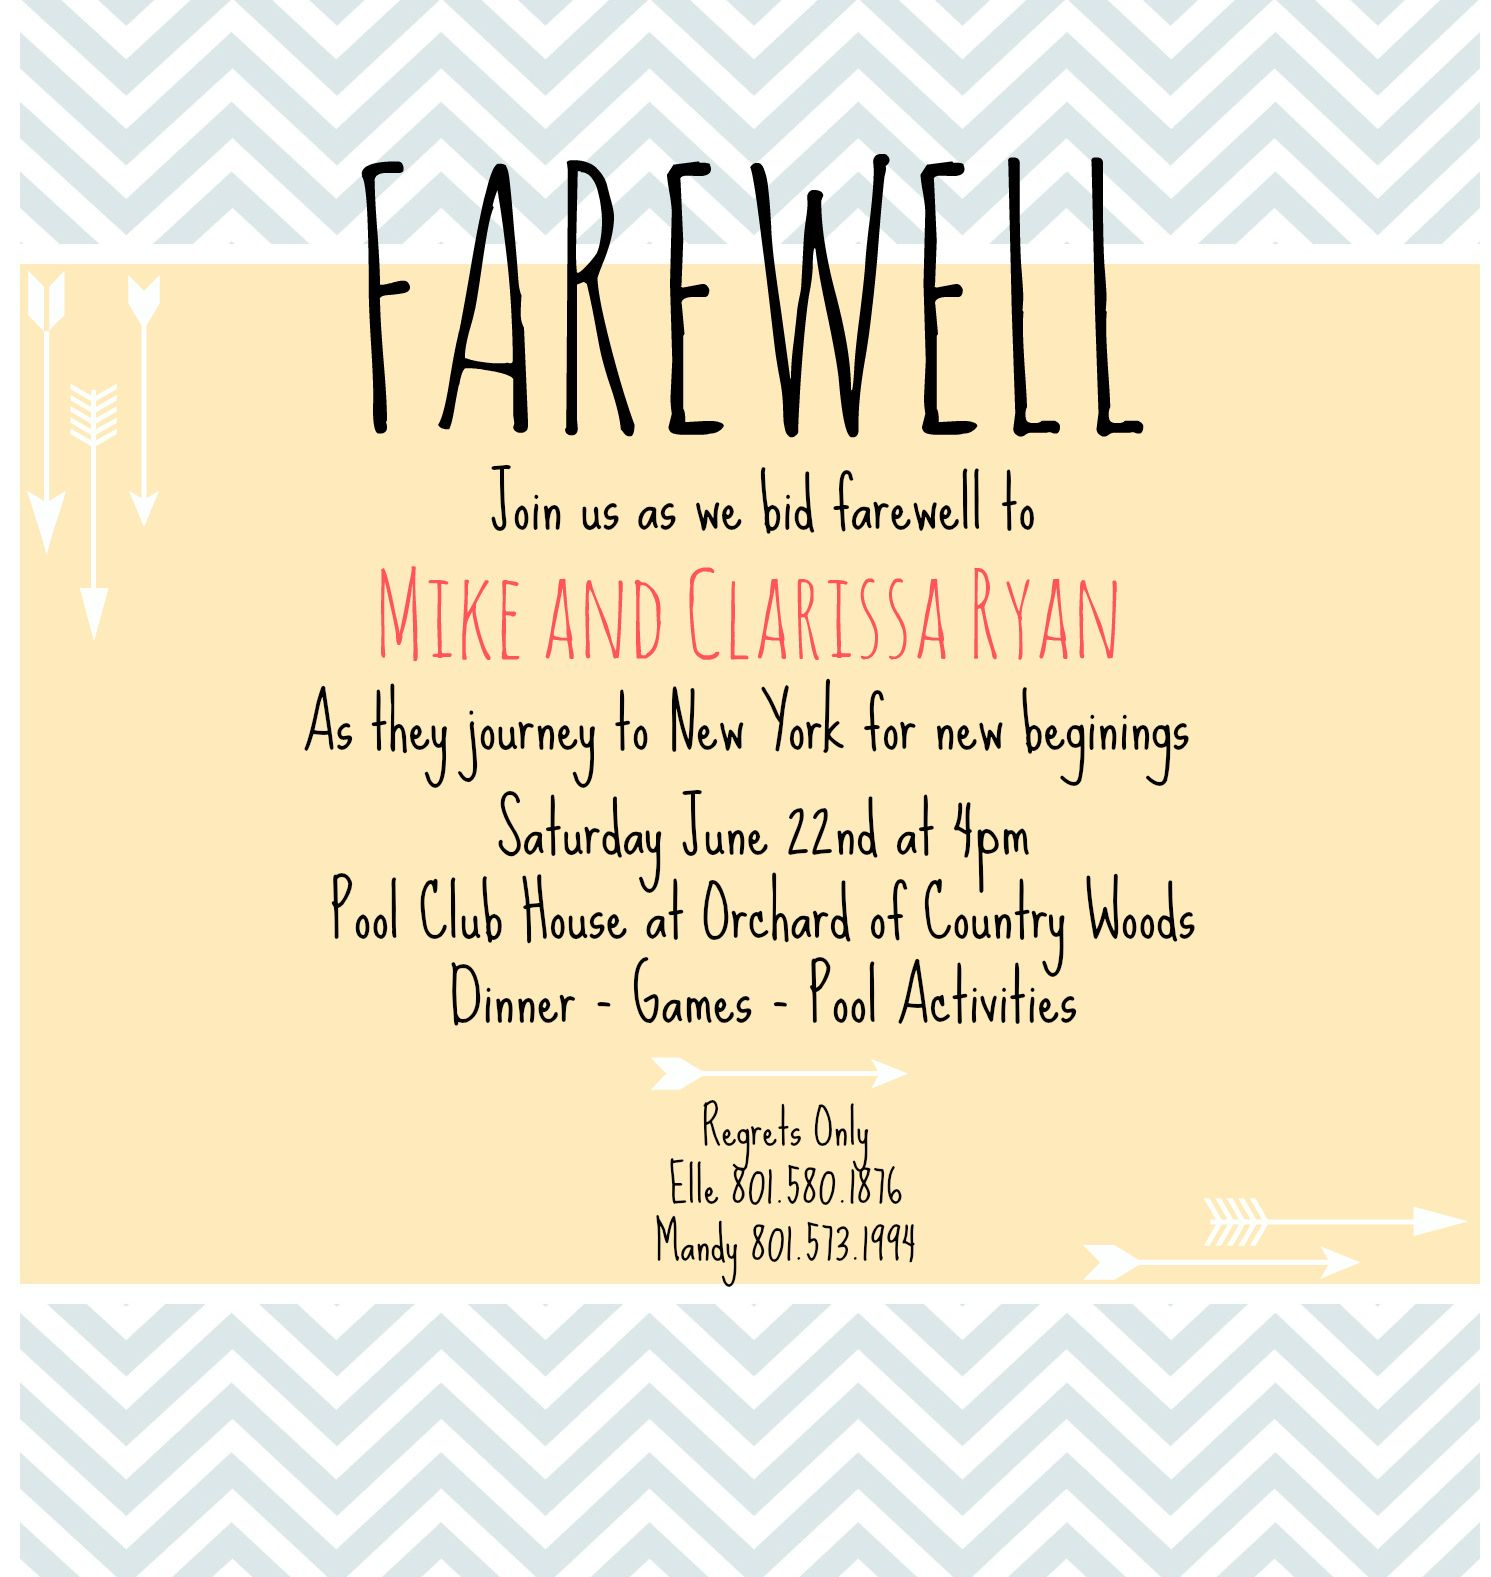 farewell invite picmonkey creations farewell party invitations